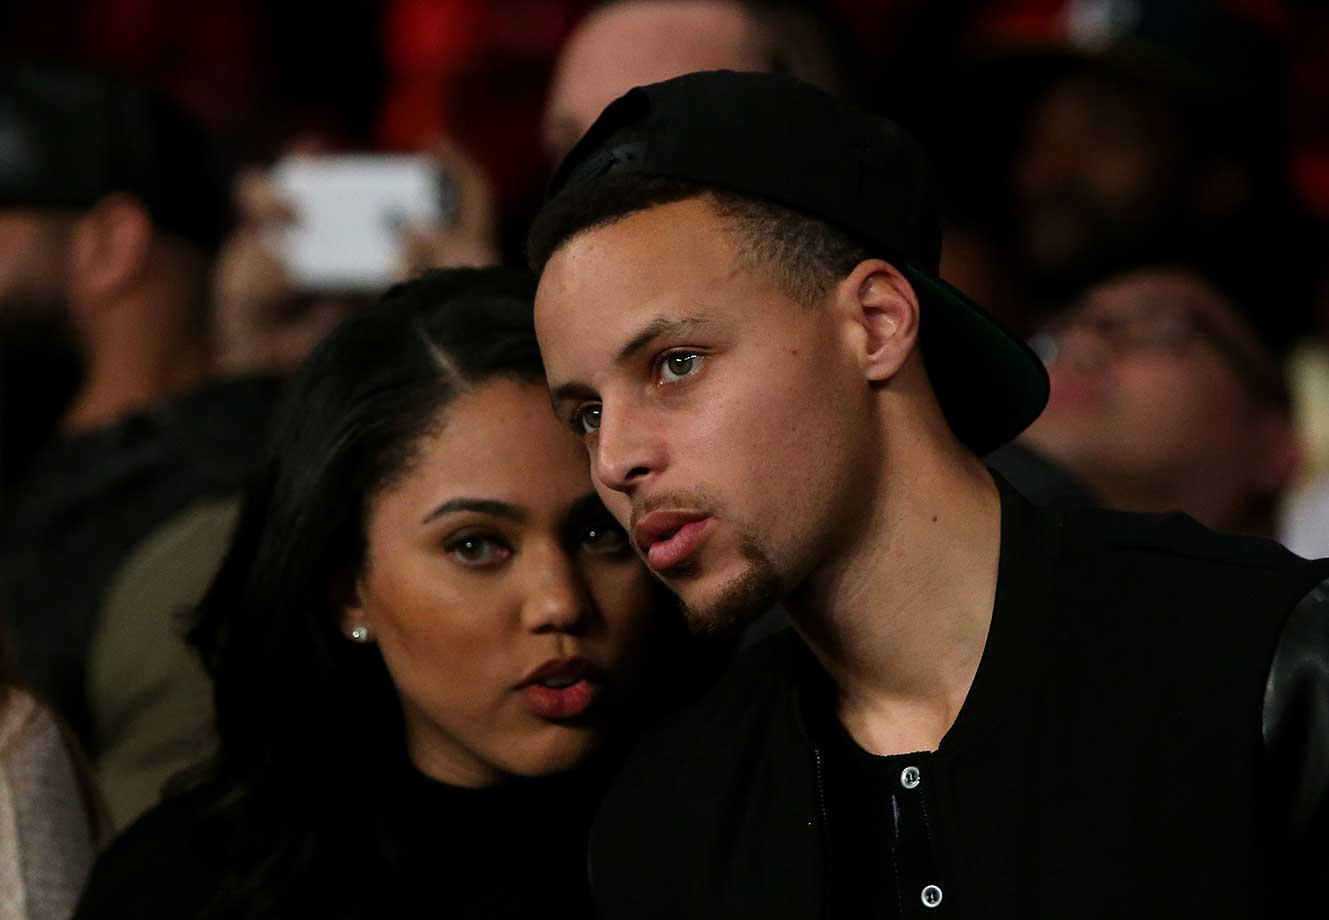 Stephen Curry and his wife Ayesha at the Andre Ward-Sullivan Barrera bout at ORACLE Arena in Oakland.